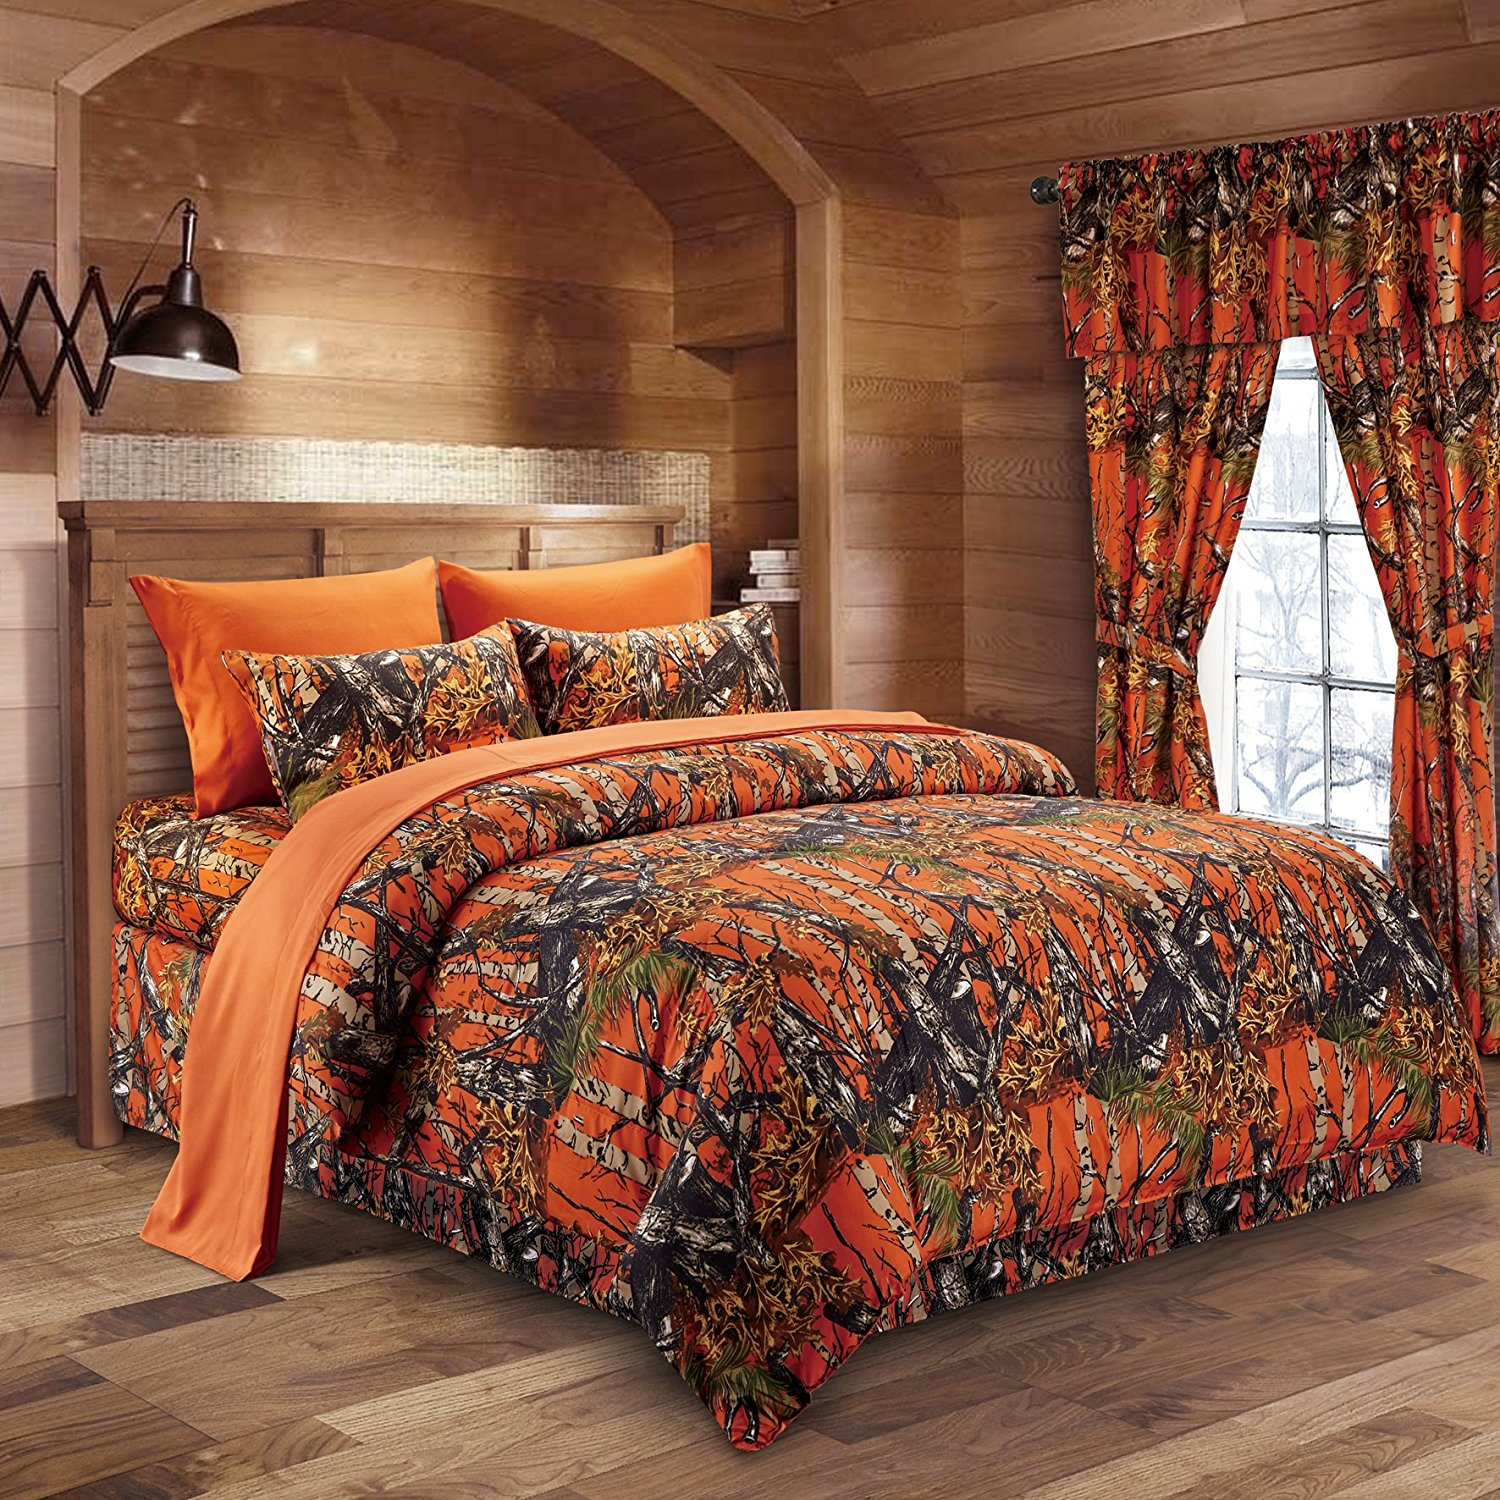 Camo Bed Sheet Great For Kids